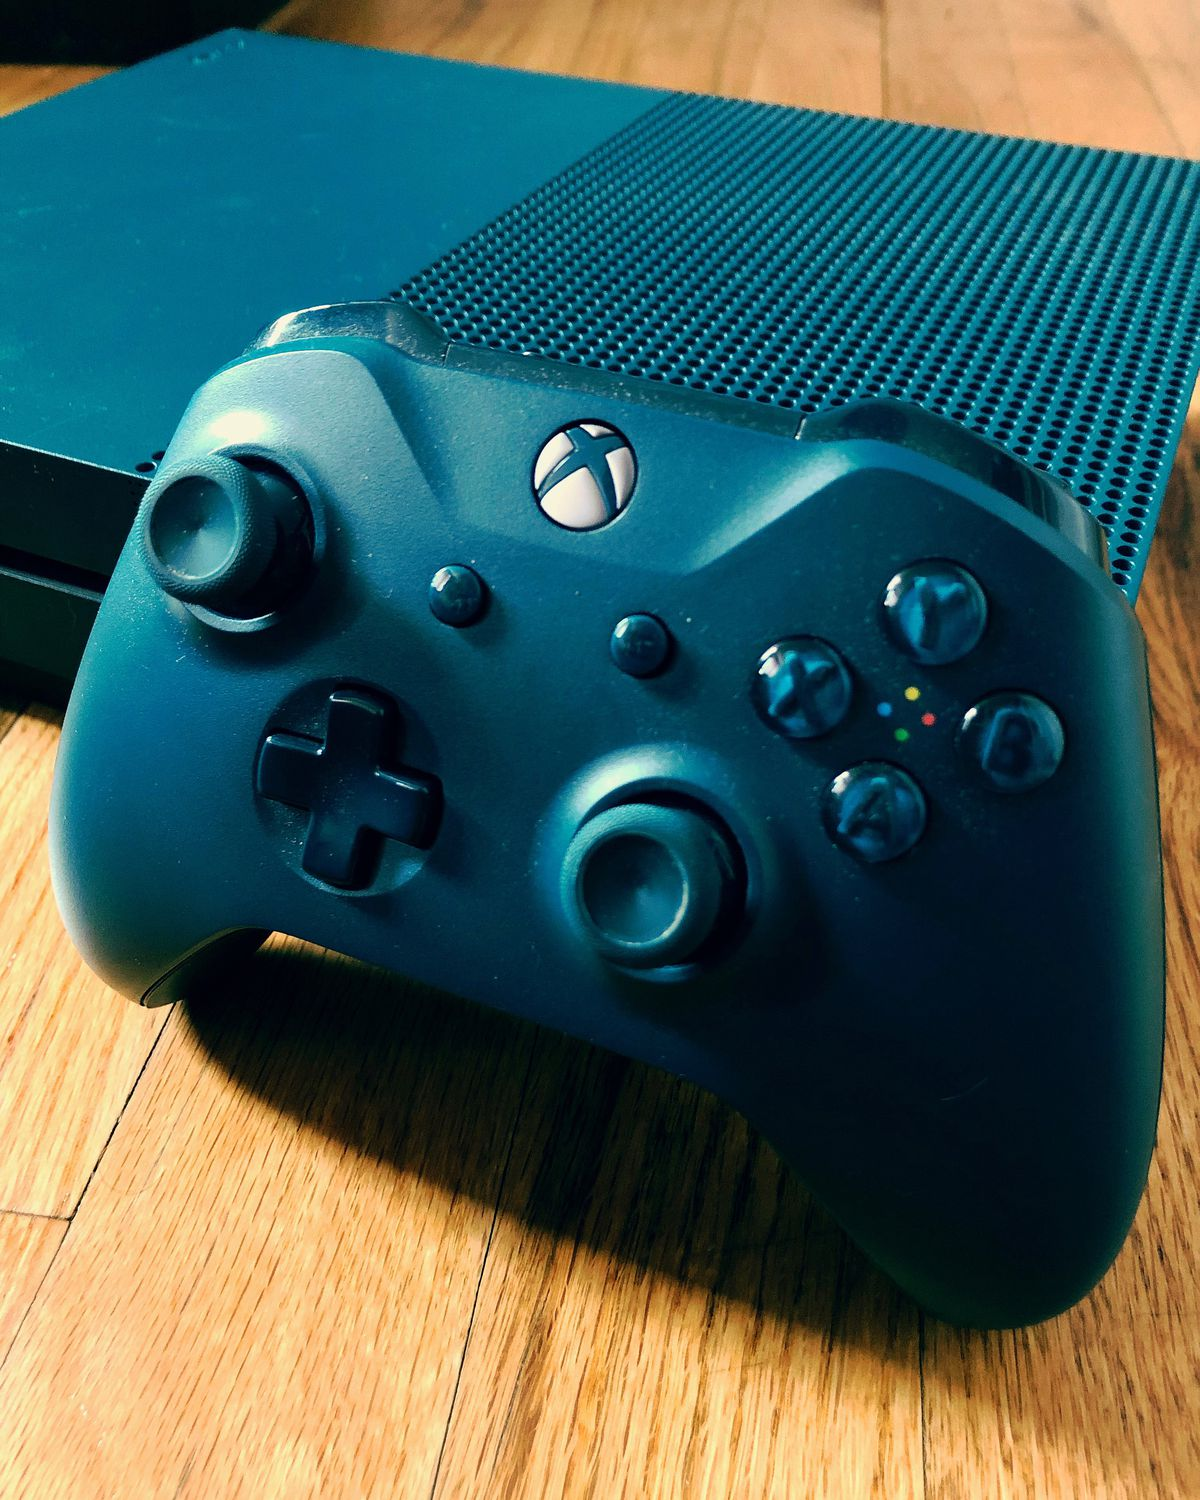 The worst thing about my Xbox One is its reliance on batteries - The